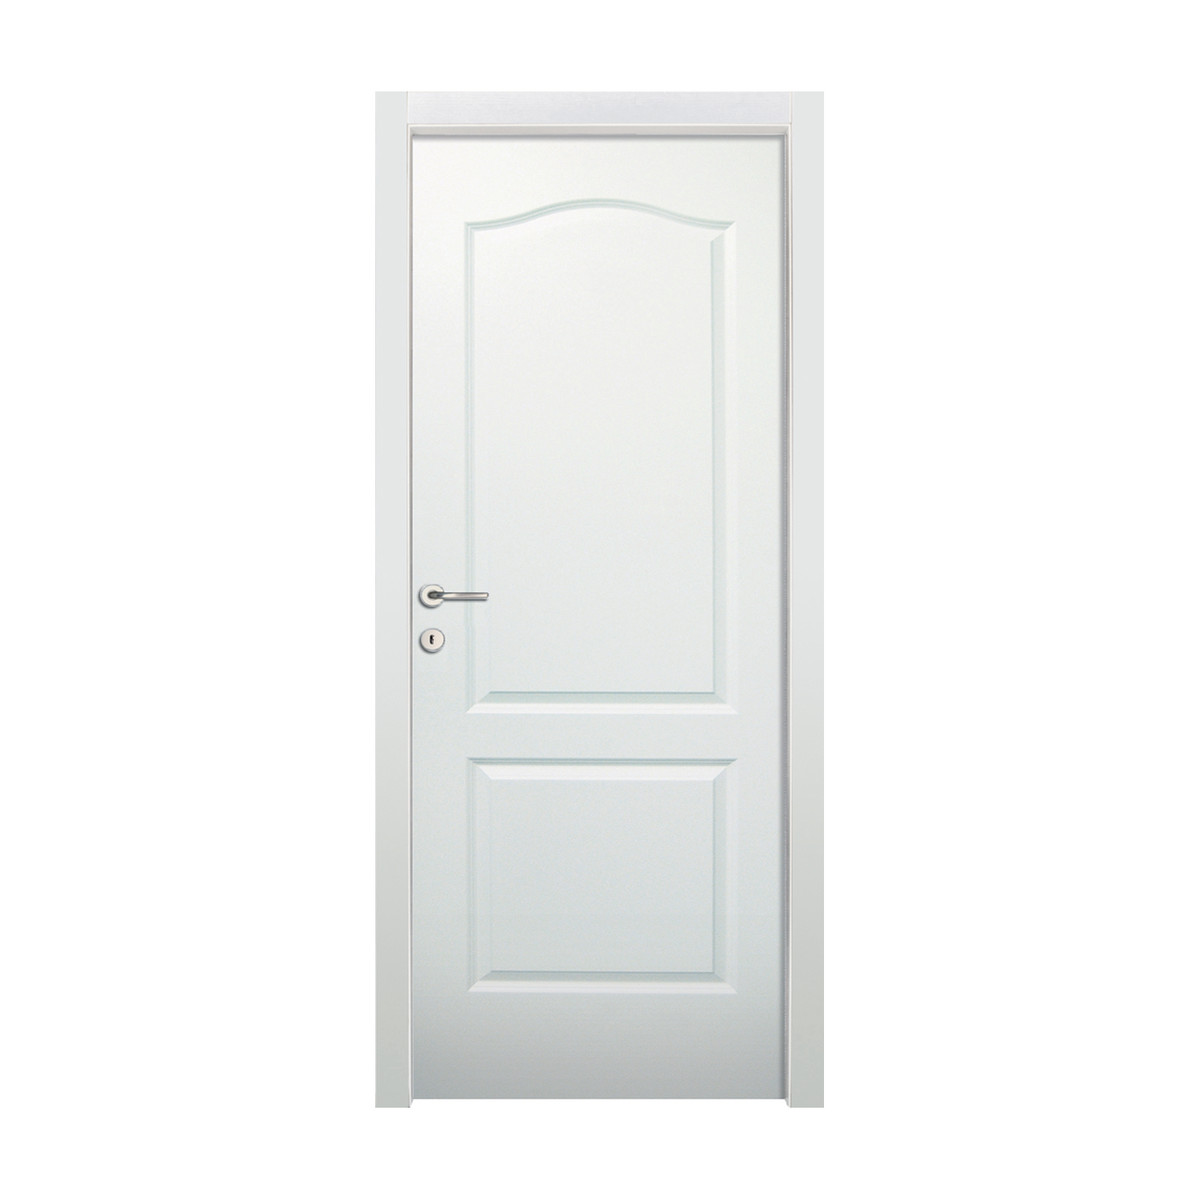 Porta da interno battente ipanema bianco 80 x h 210 cm dx for Battiscopa bianco leroy merlin